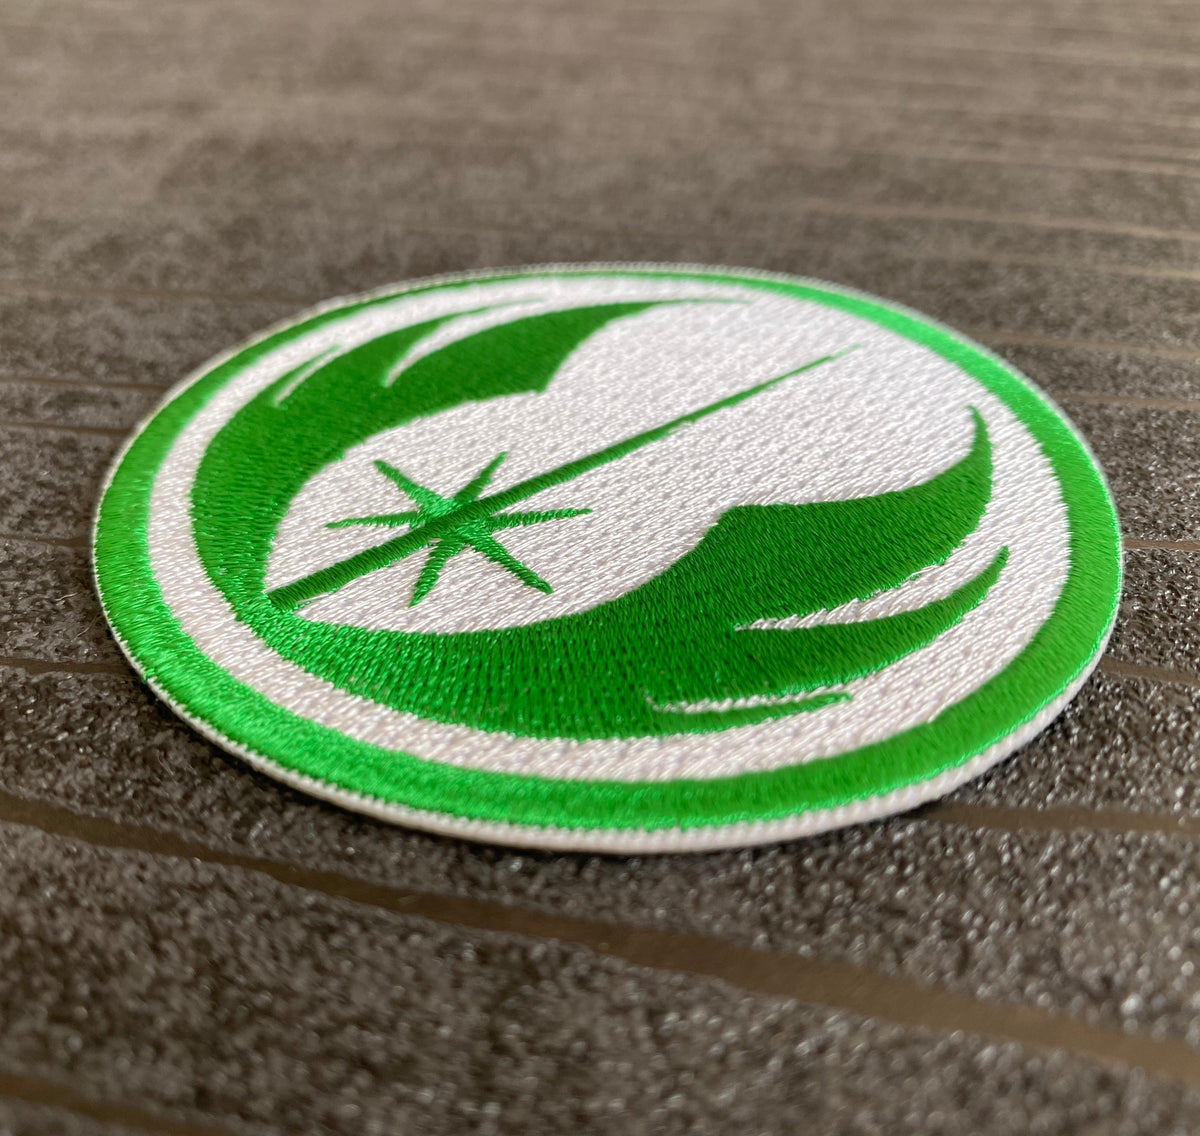 Star Wars Jedi Order Embroidered Iron on Patch (75mm) in Green and White